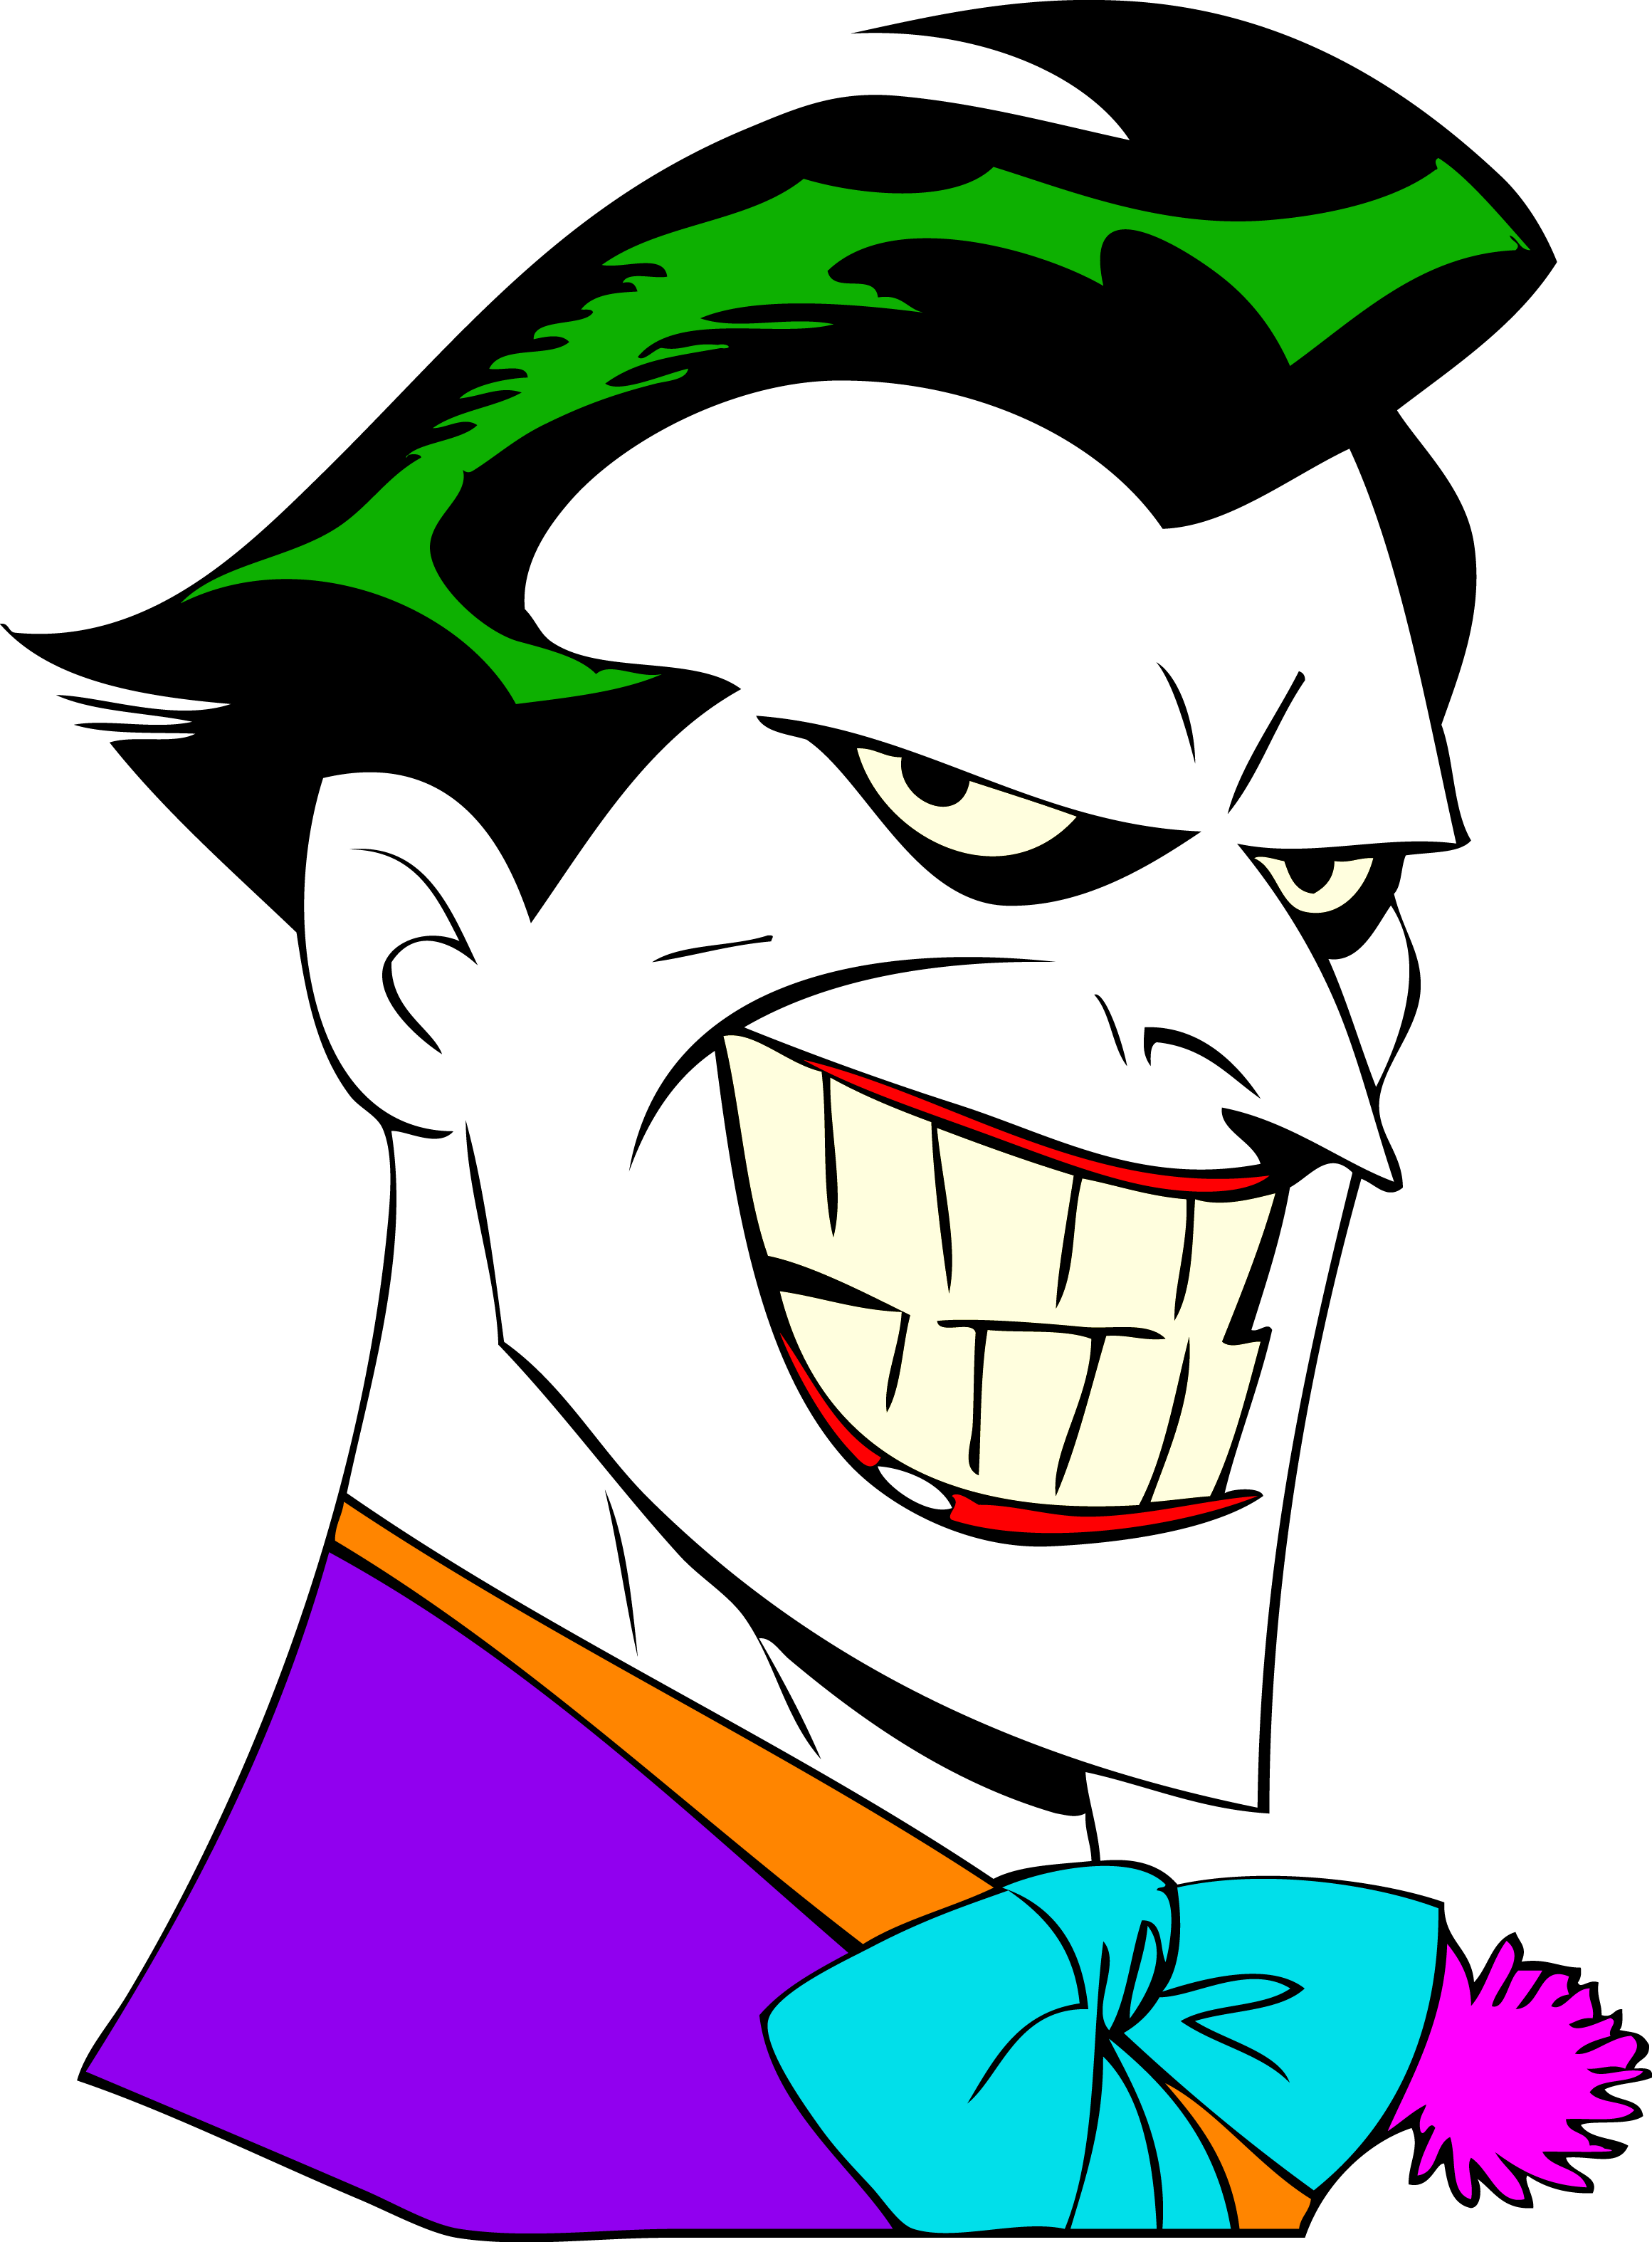 Joker Clipart Anonymous Face Joker Anonymous Face Joker Animated Series Drawing Png Download Full Size Clipart 5278196 Pinclipart